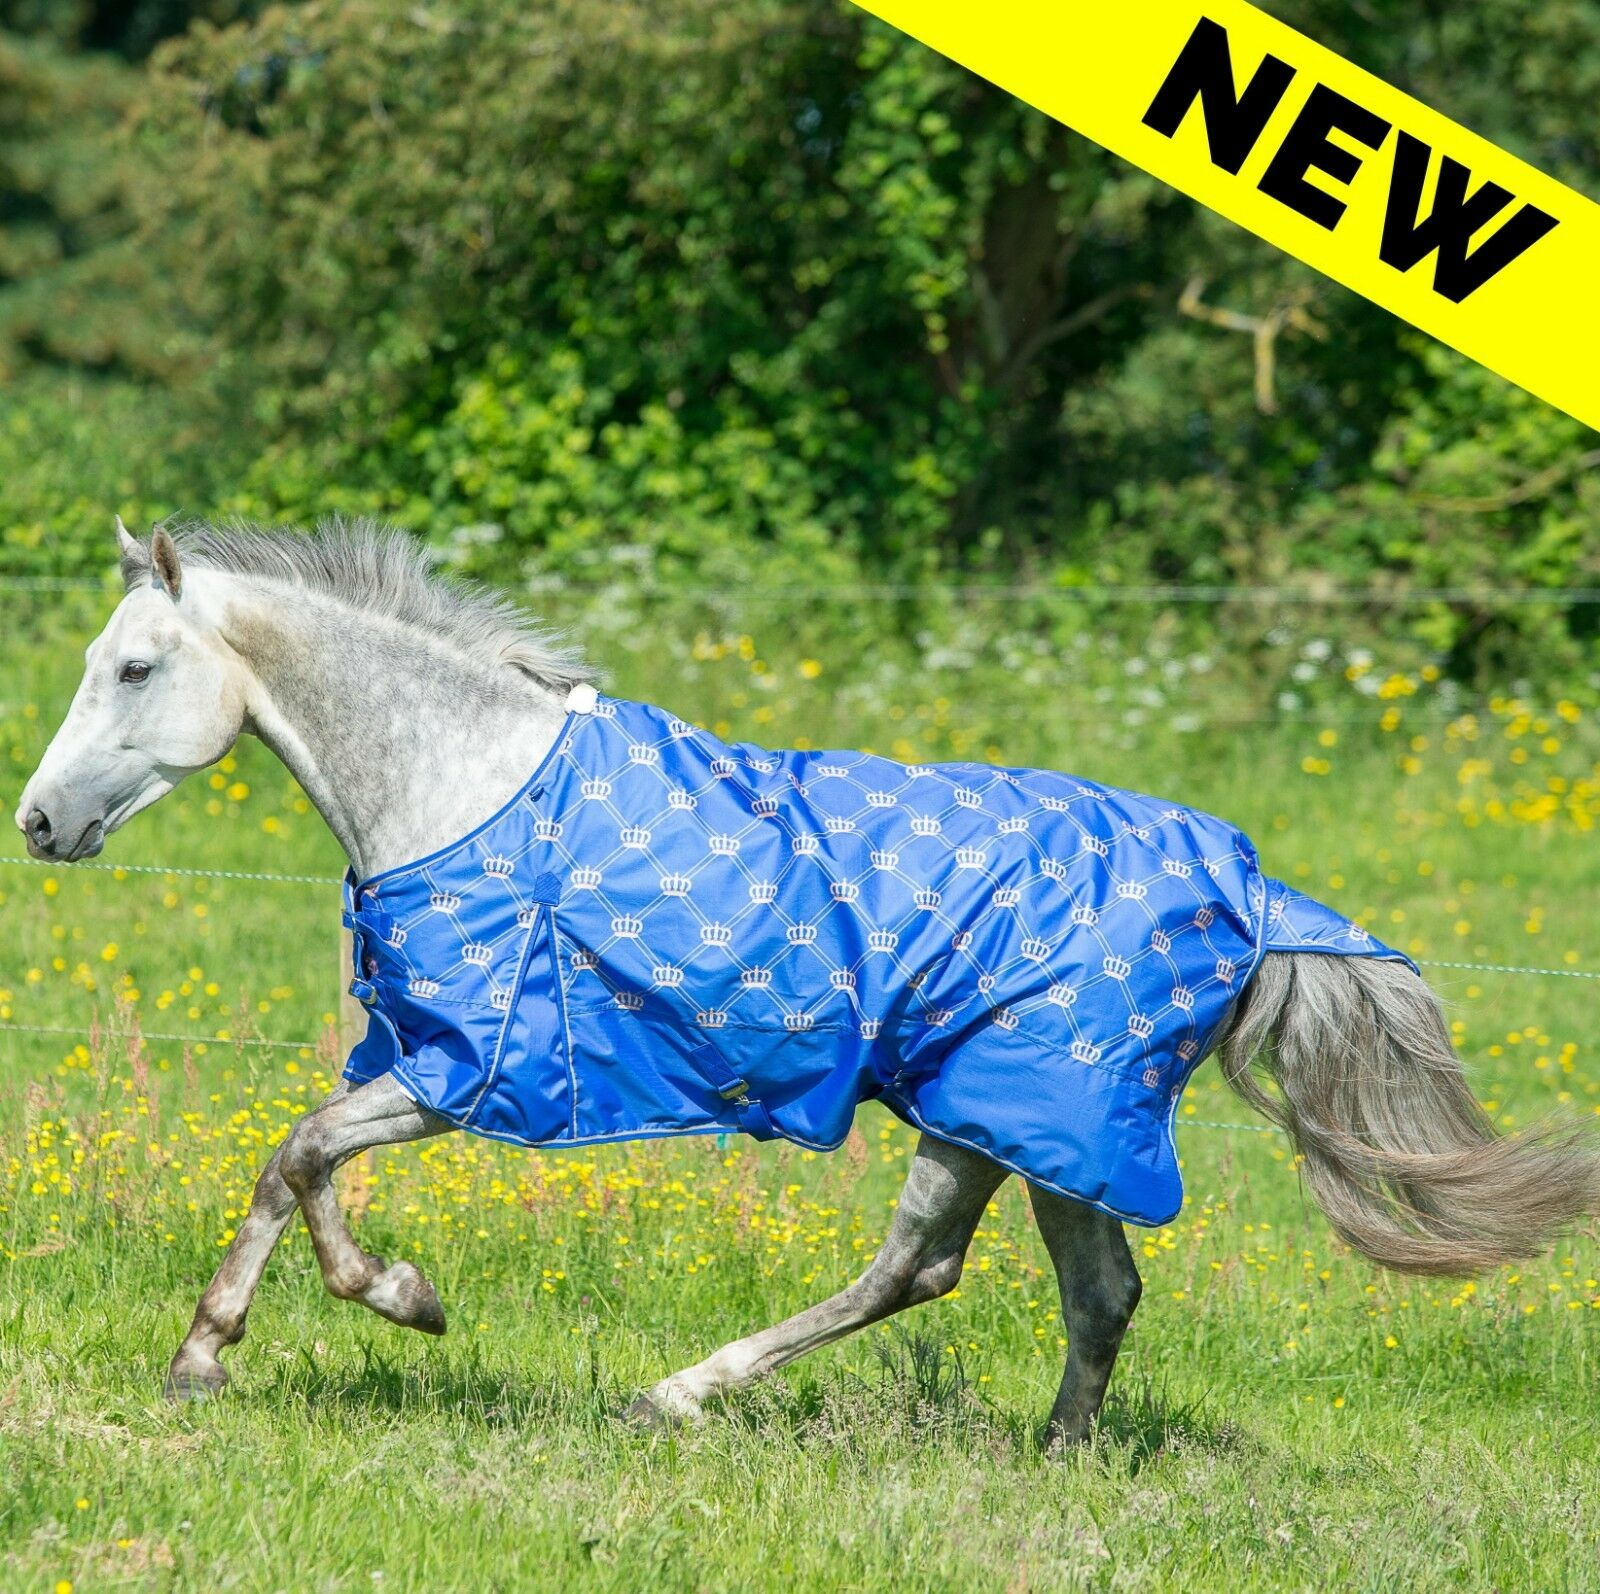 Gallop Monarch Lightweight Turnout Rug- No Fill - Mid Season Spring Horse